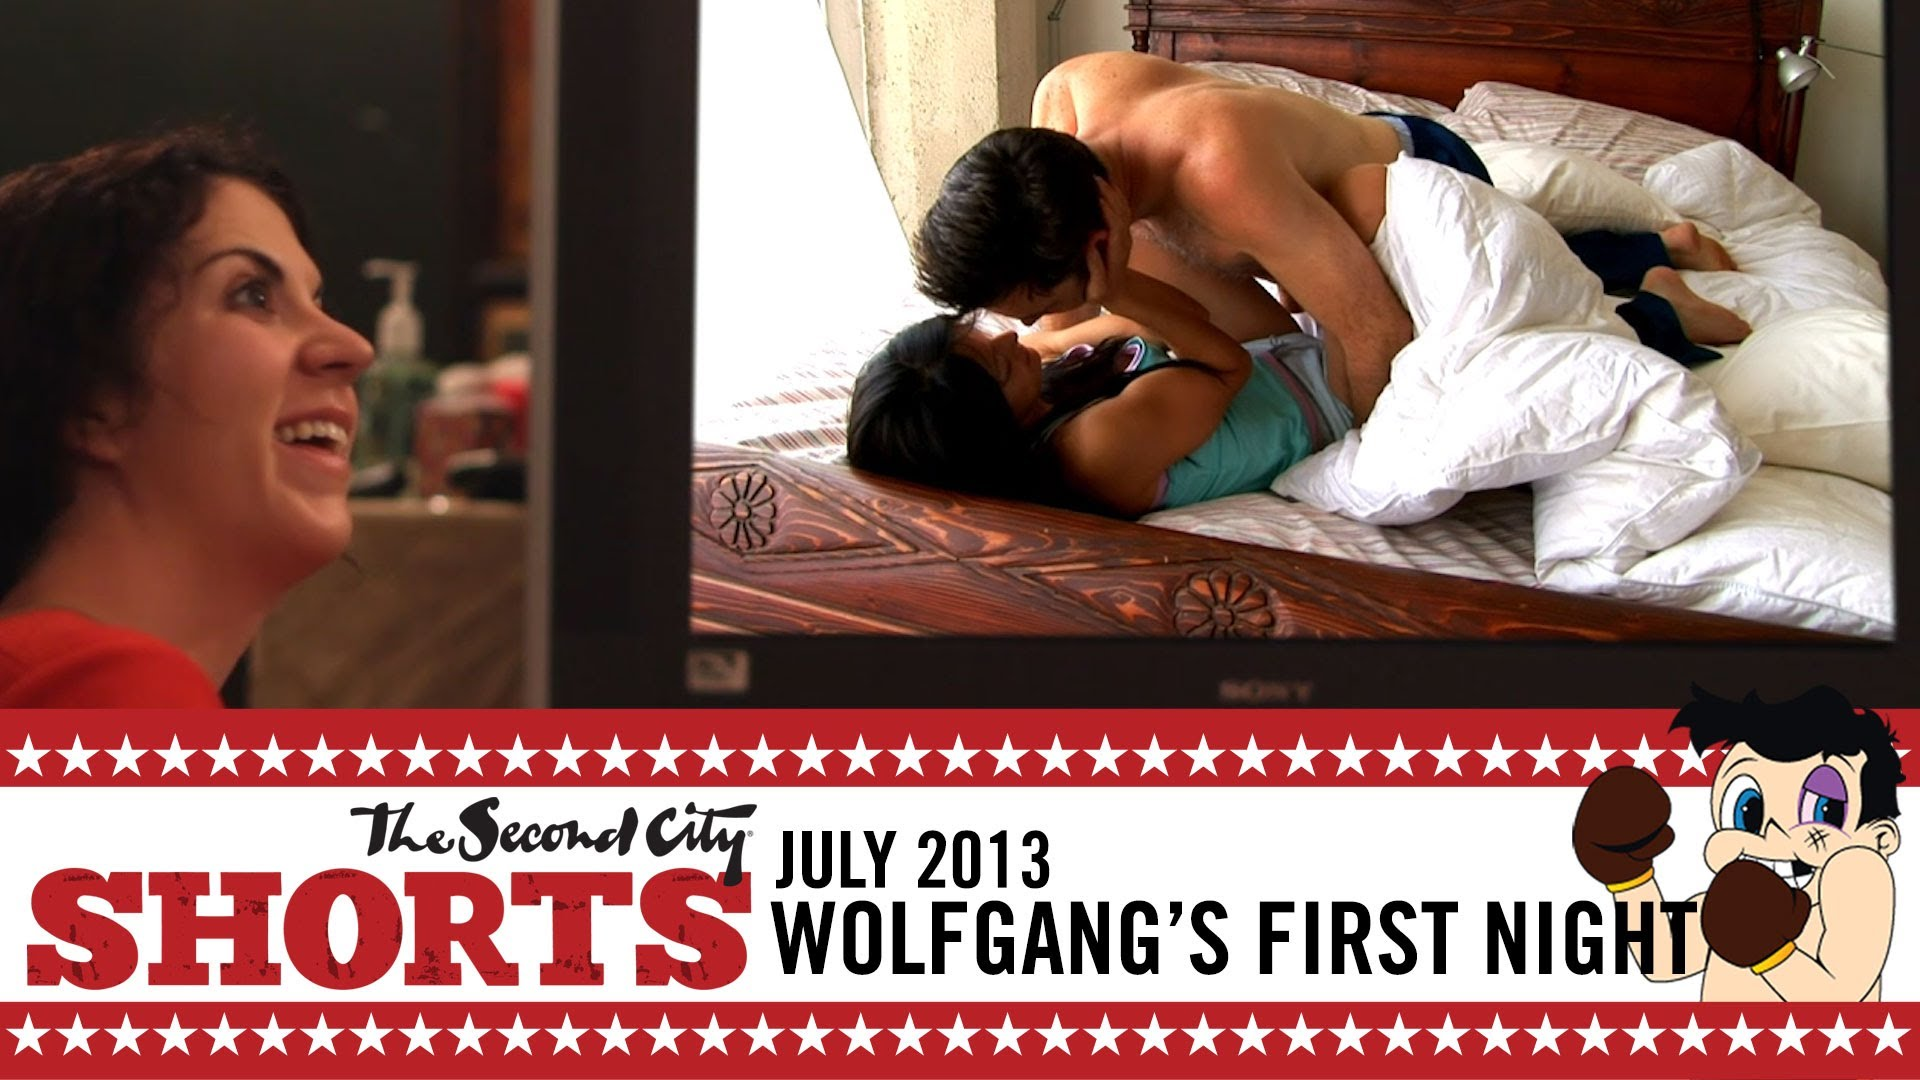 Wolfgang's First Night - Second City Shorts Winner 7/13